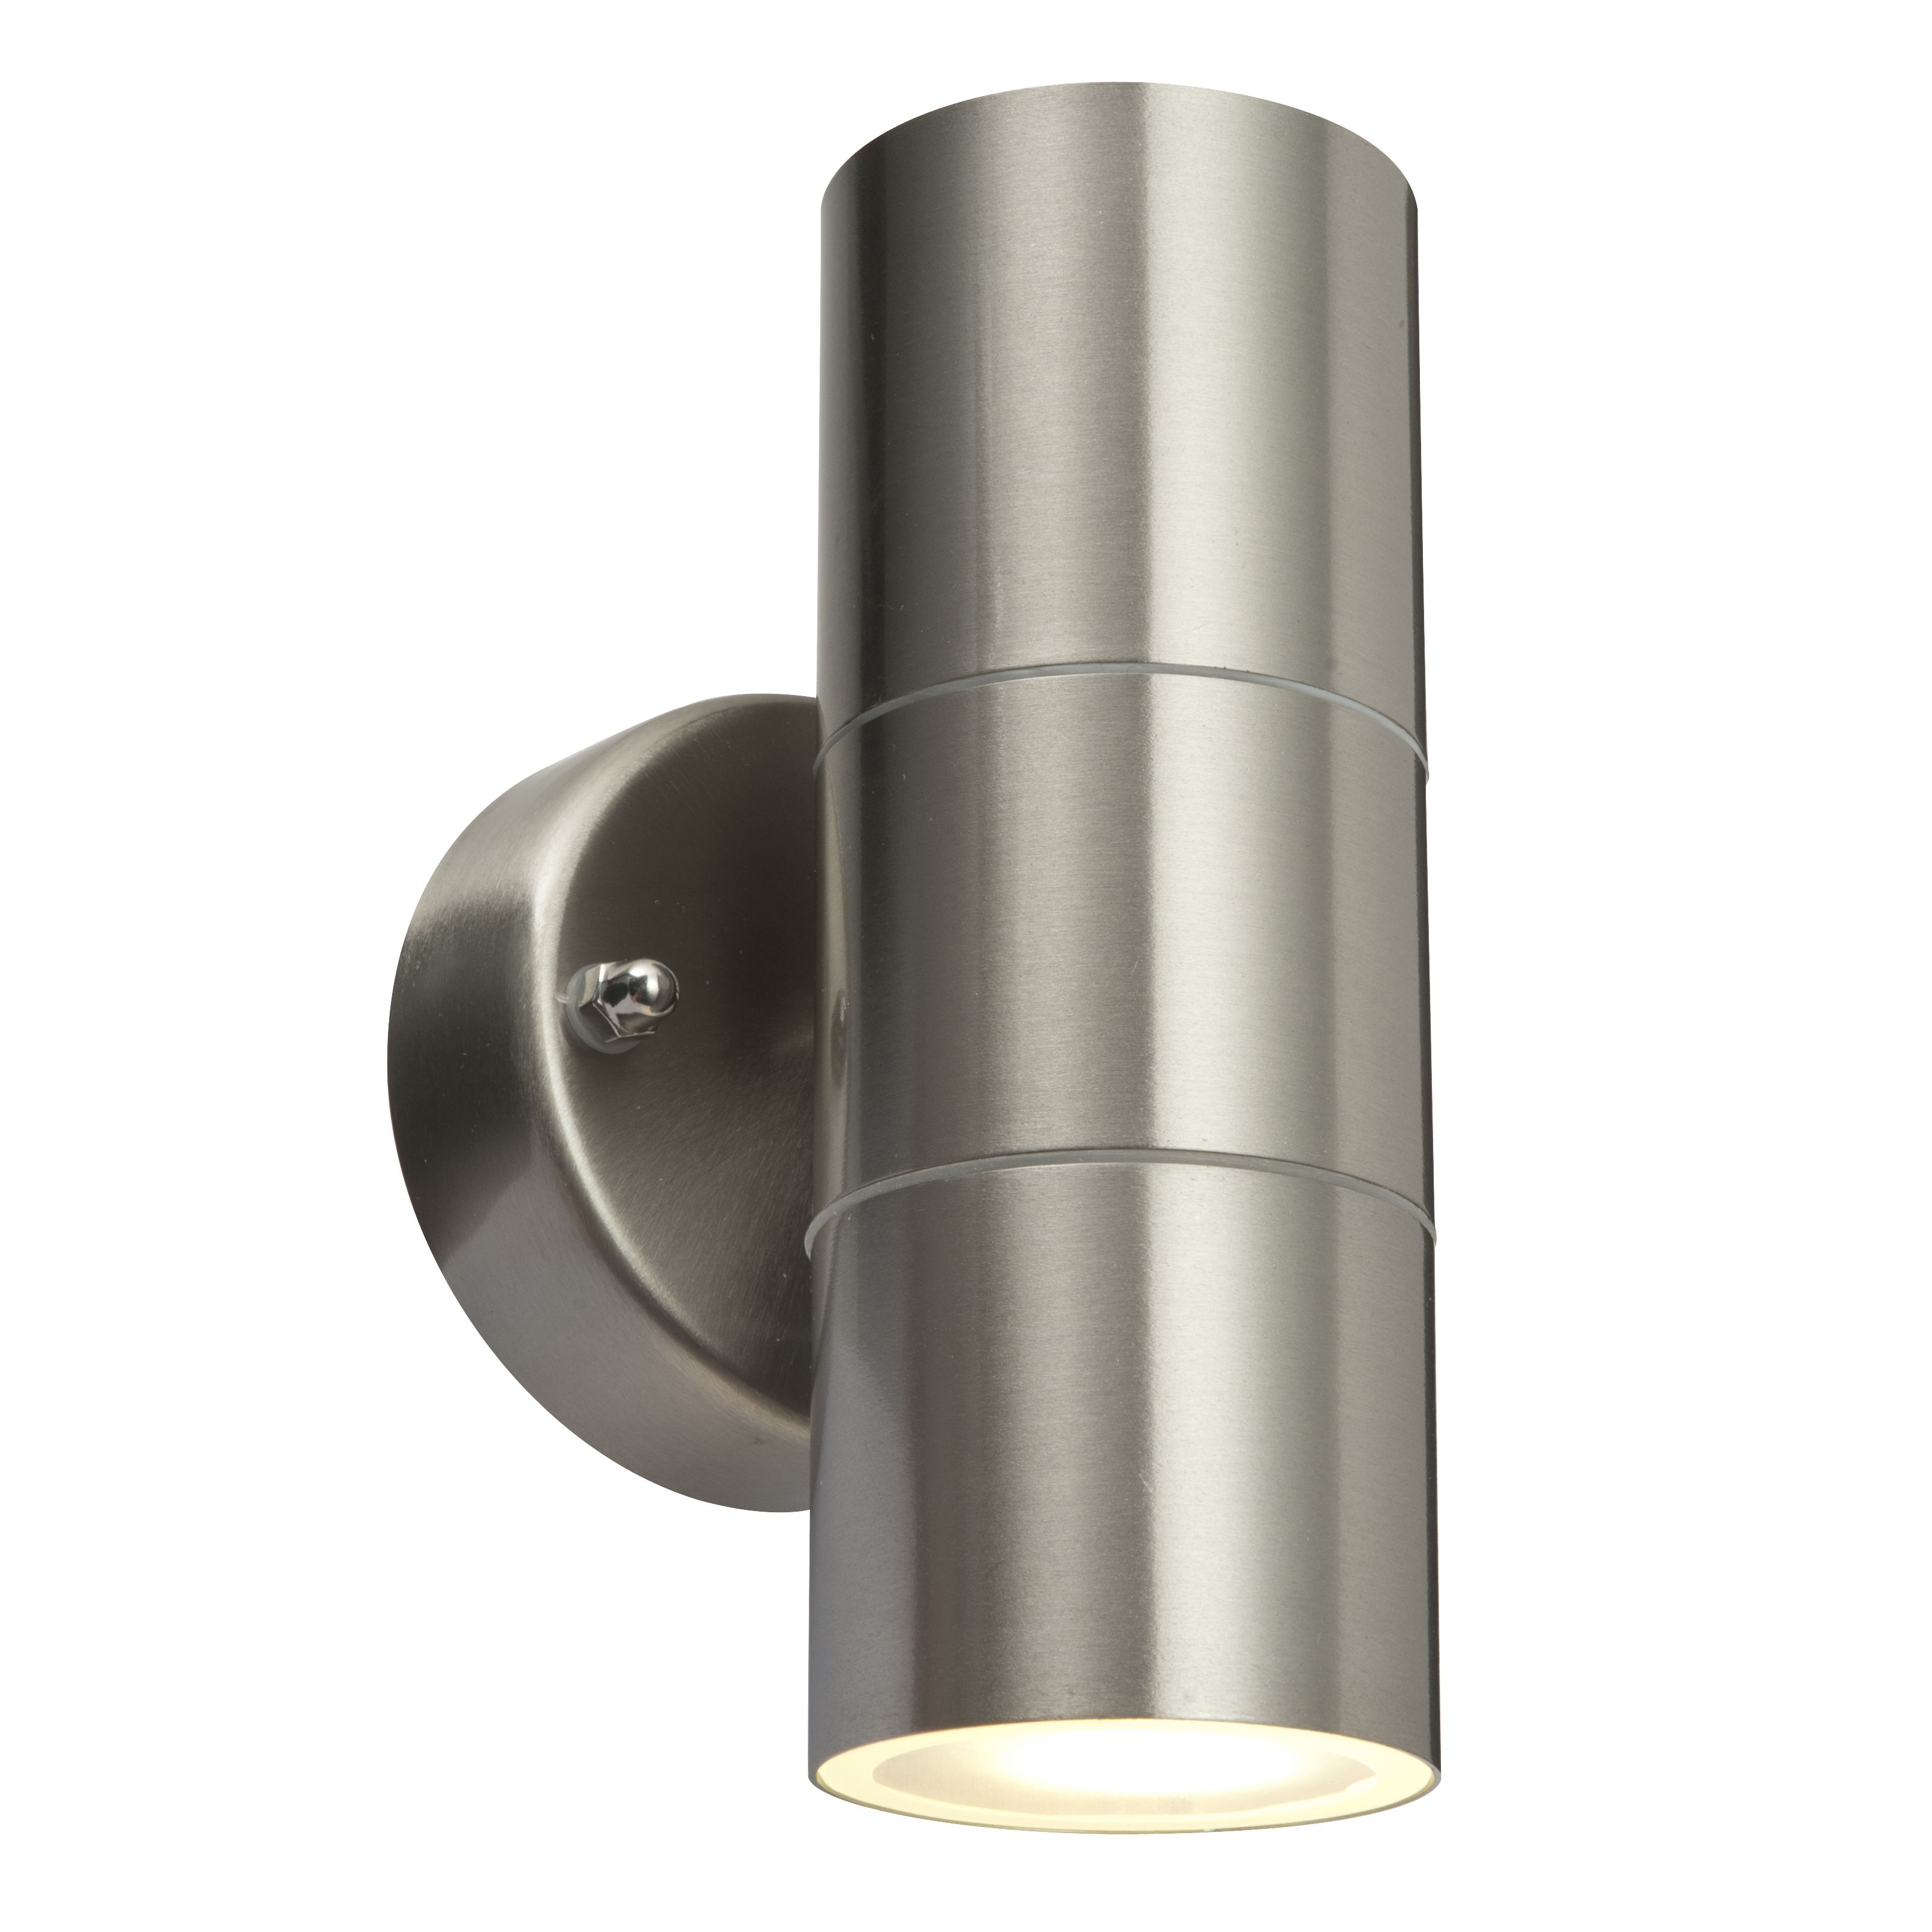 External Wall Lights Up And Down : Blooma Nomos 6W Mains Powered Wall Light with PIR Departments DIY at B&Q